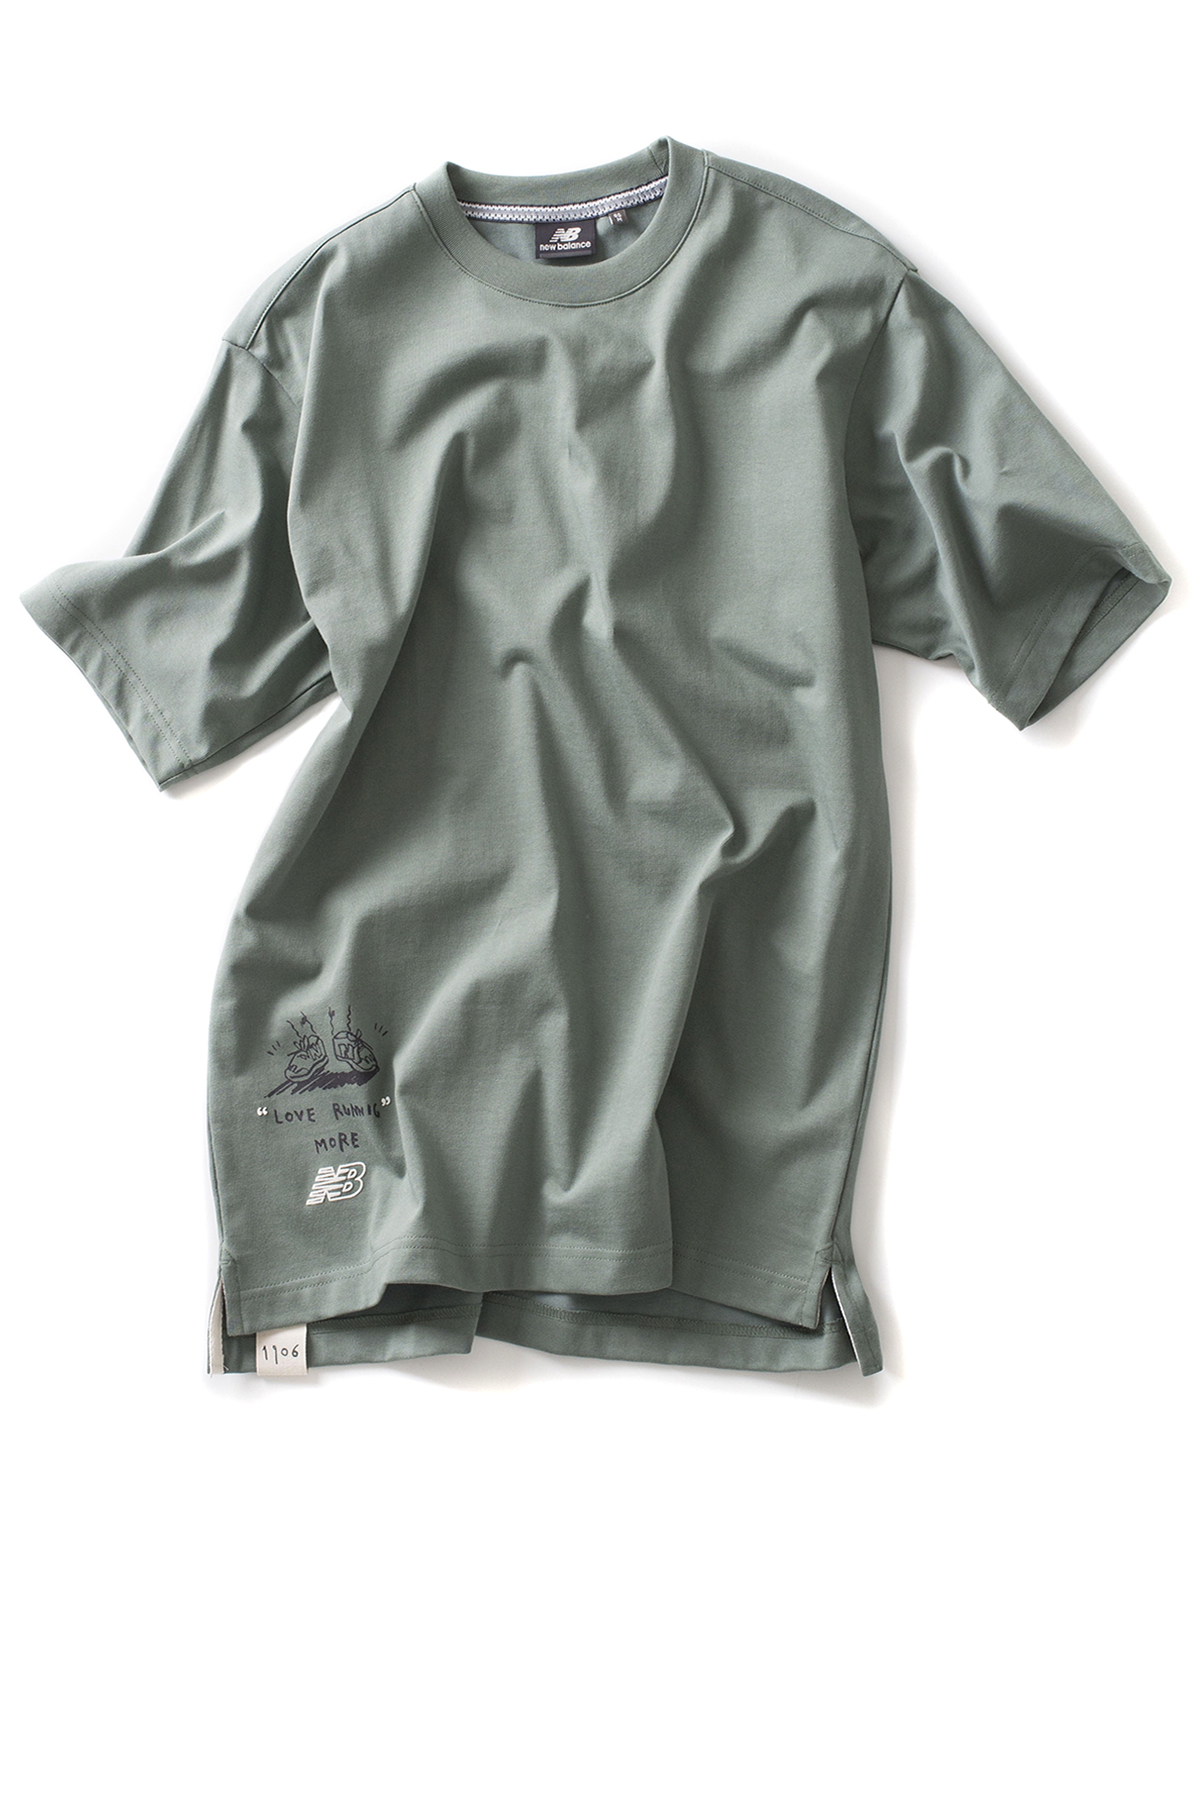 New Balance : UNI Drawing Pack Running On NB Tee (Mint)